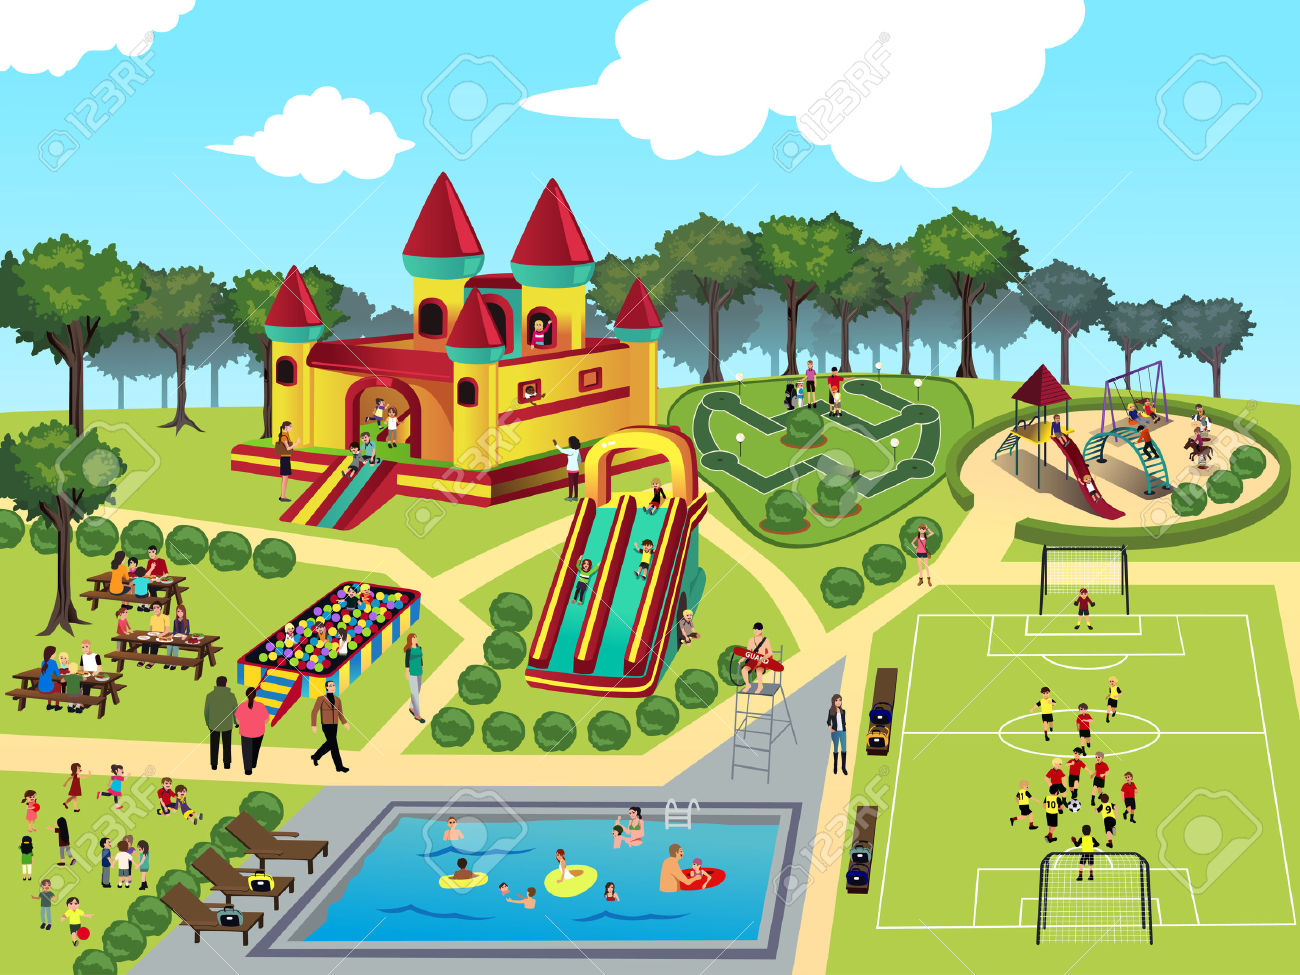 Park clipart #10, Download drawings